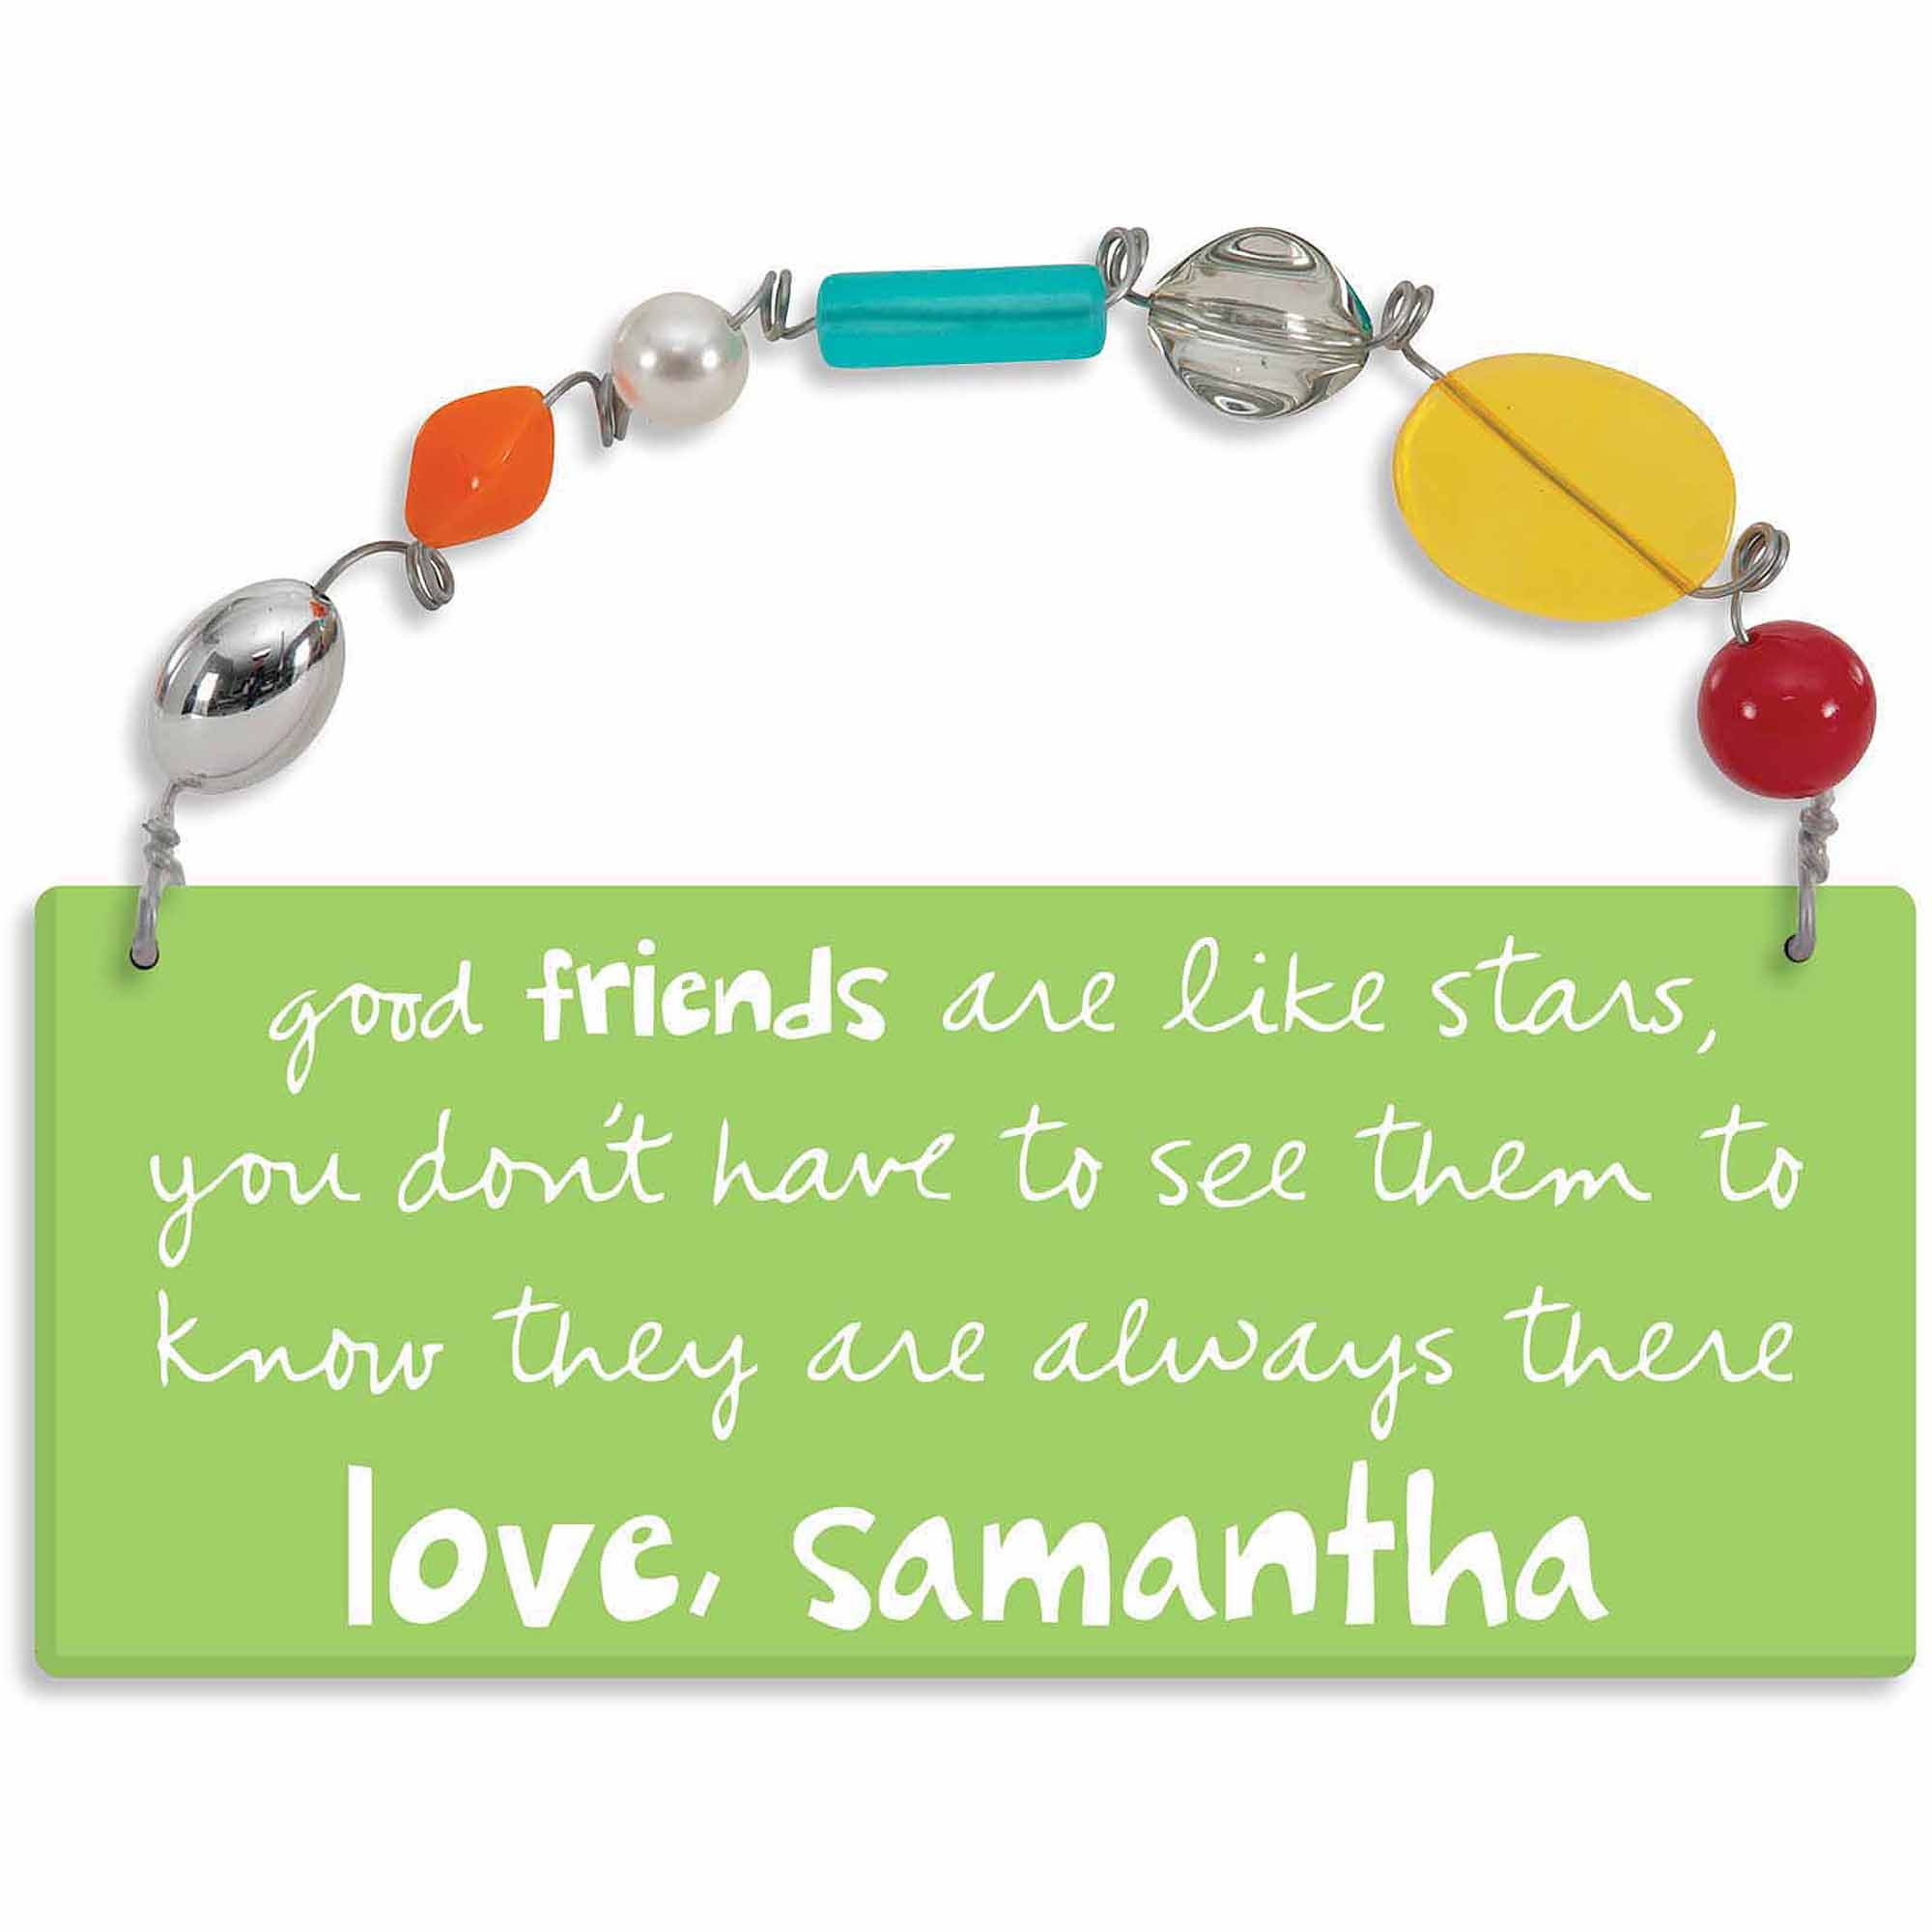 Personalized Sandra Magsamen Good Friends Are Like Stars Wall Plaque